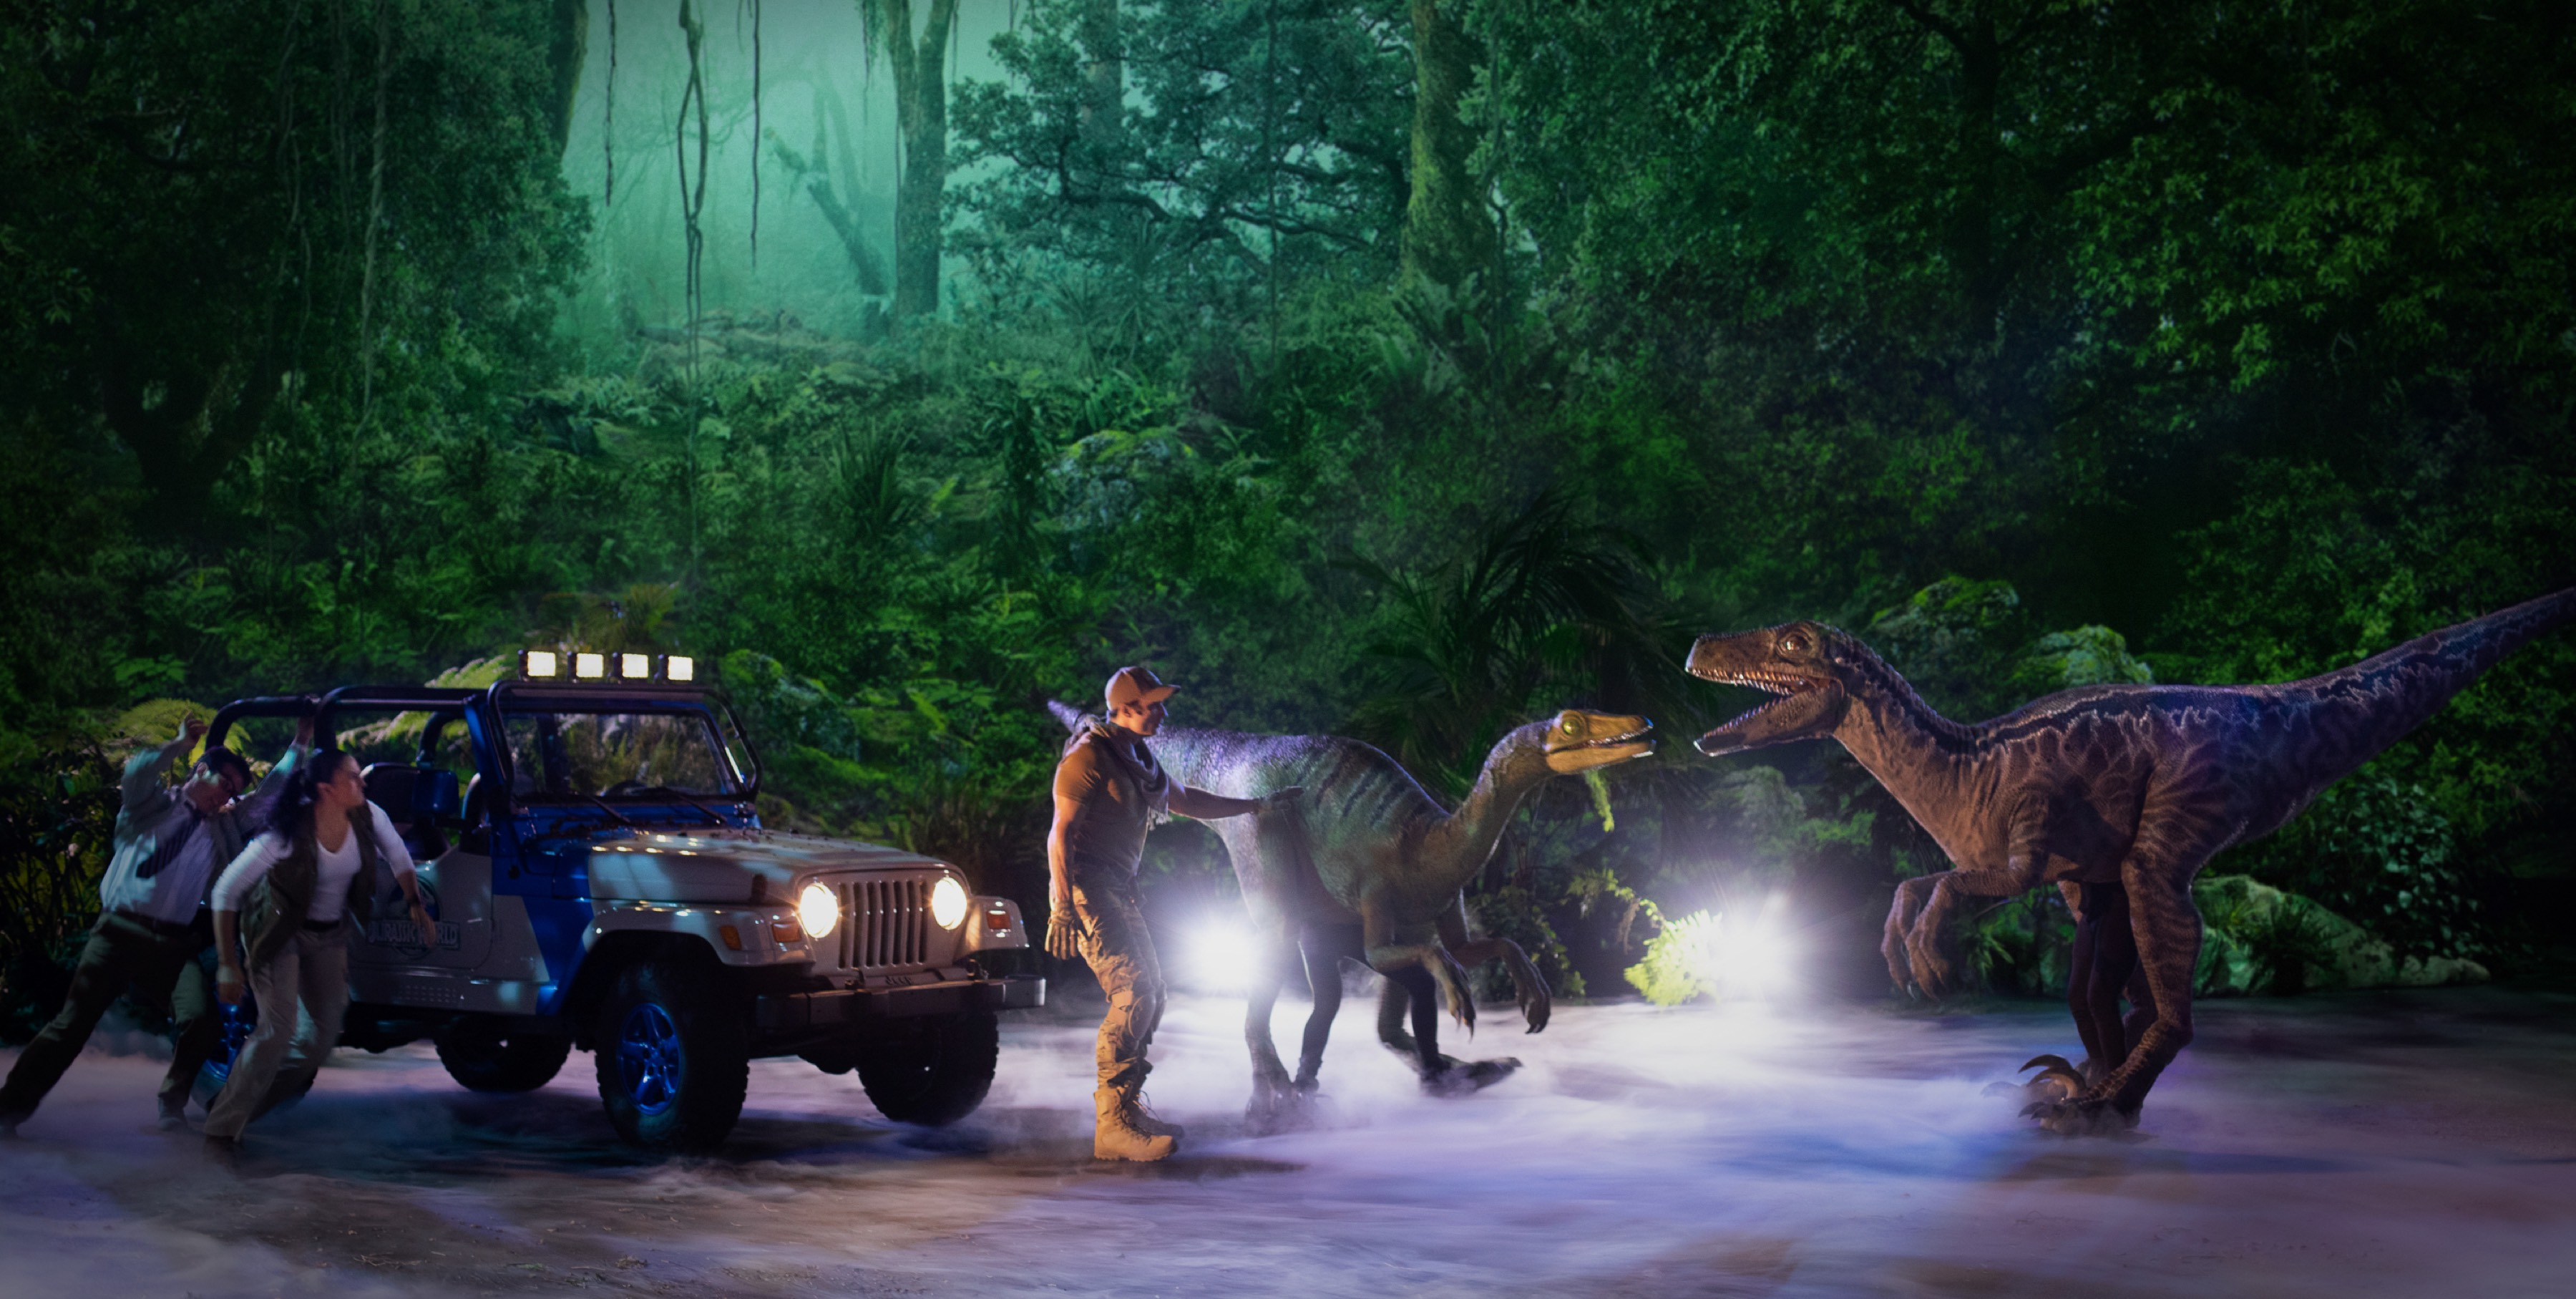 Dino confrontation with jeep team